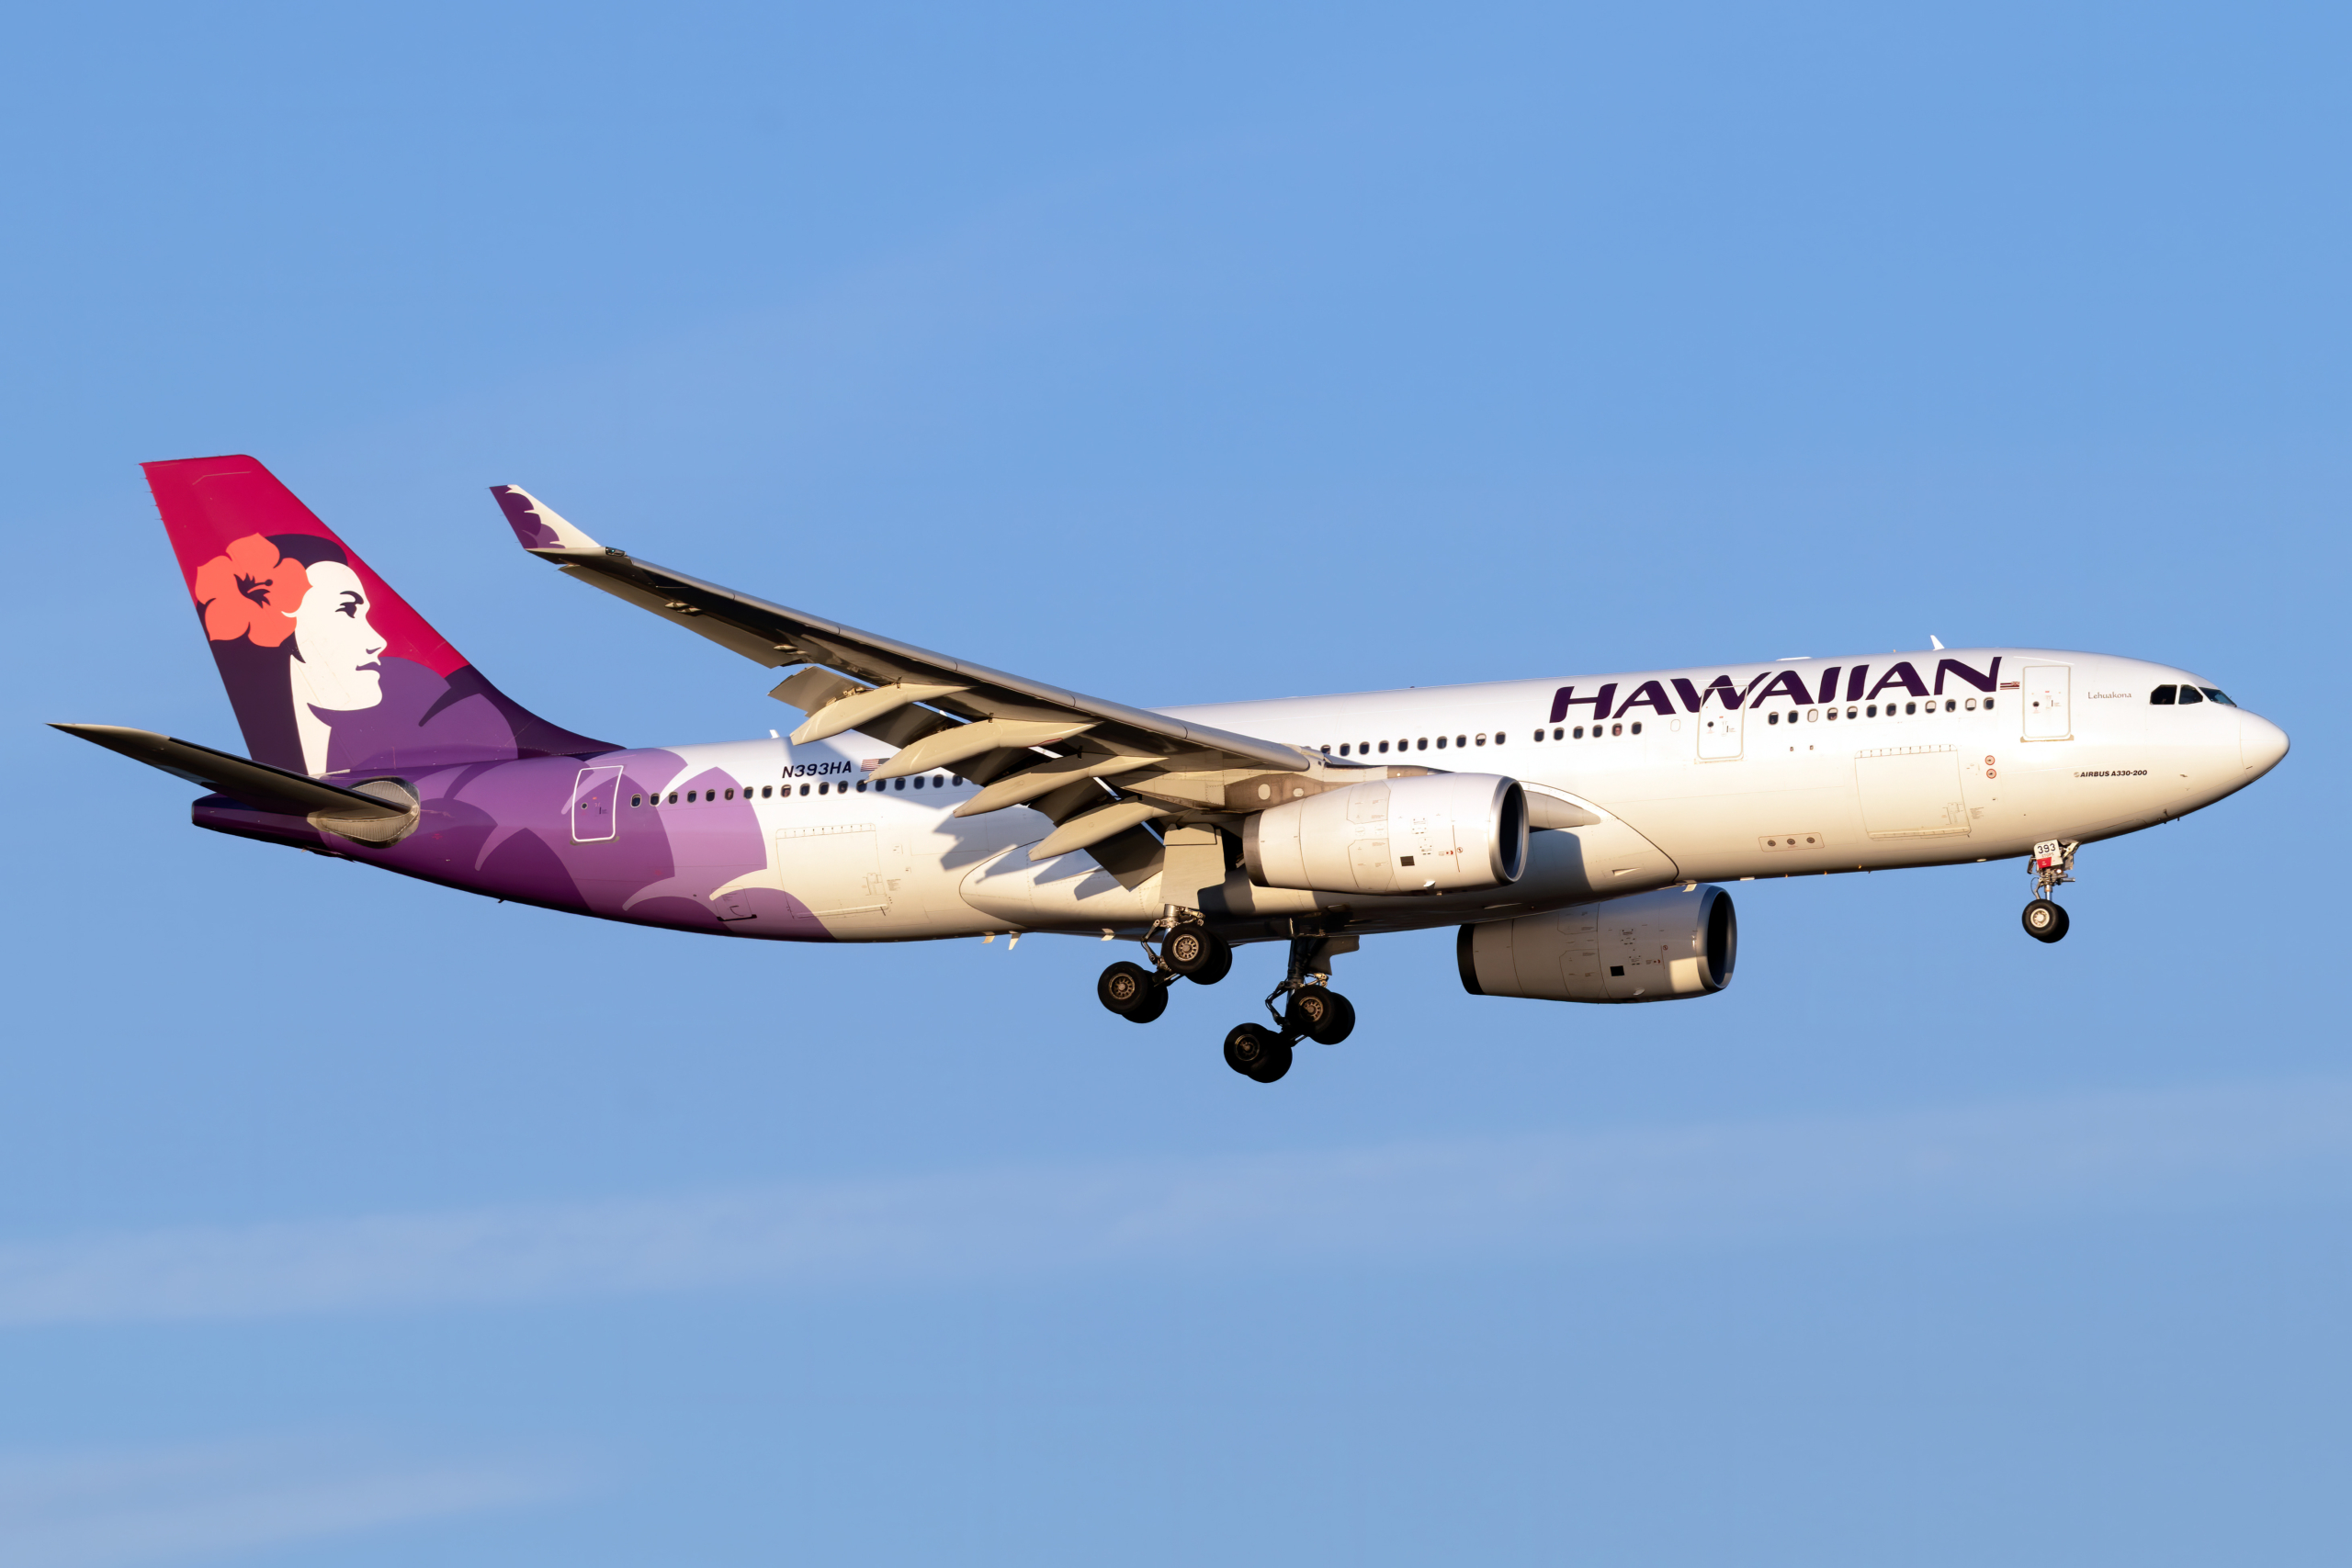 Hawaiian Airlines Airbus A330 Diverts To Midway After Inflight Issue